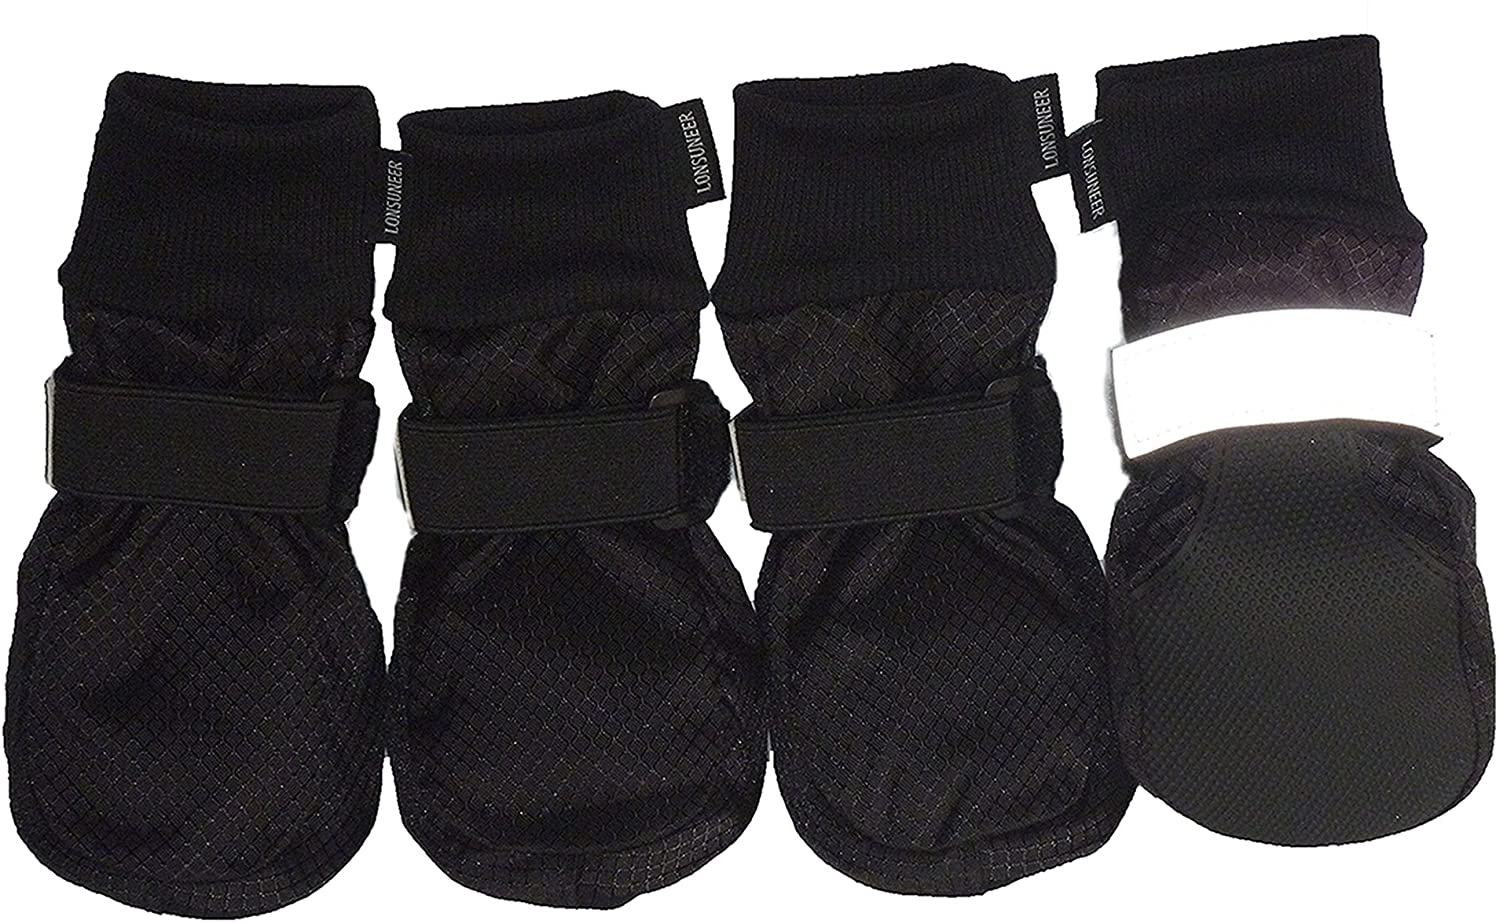 LONSUNEER Paw Protector Dog Boots Soft Sole Nonslip and Reflective Set of 4